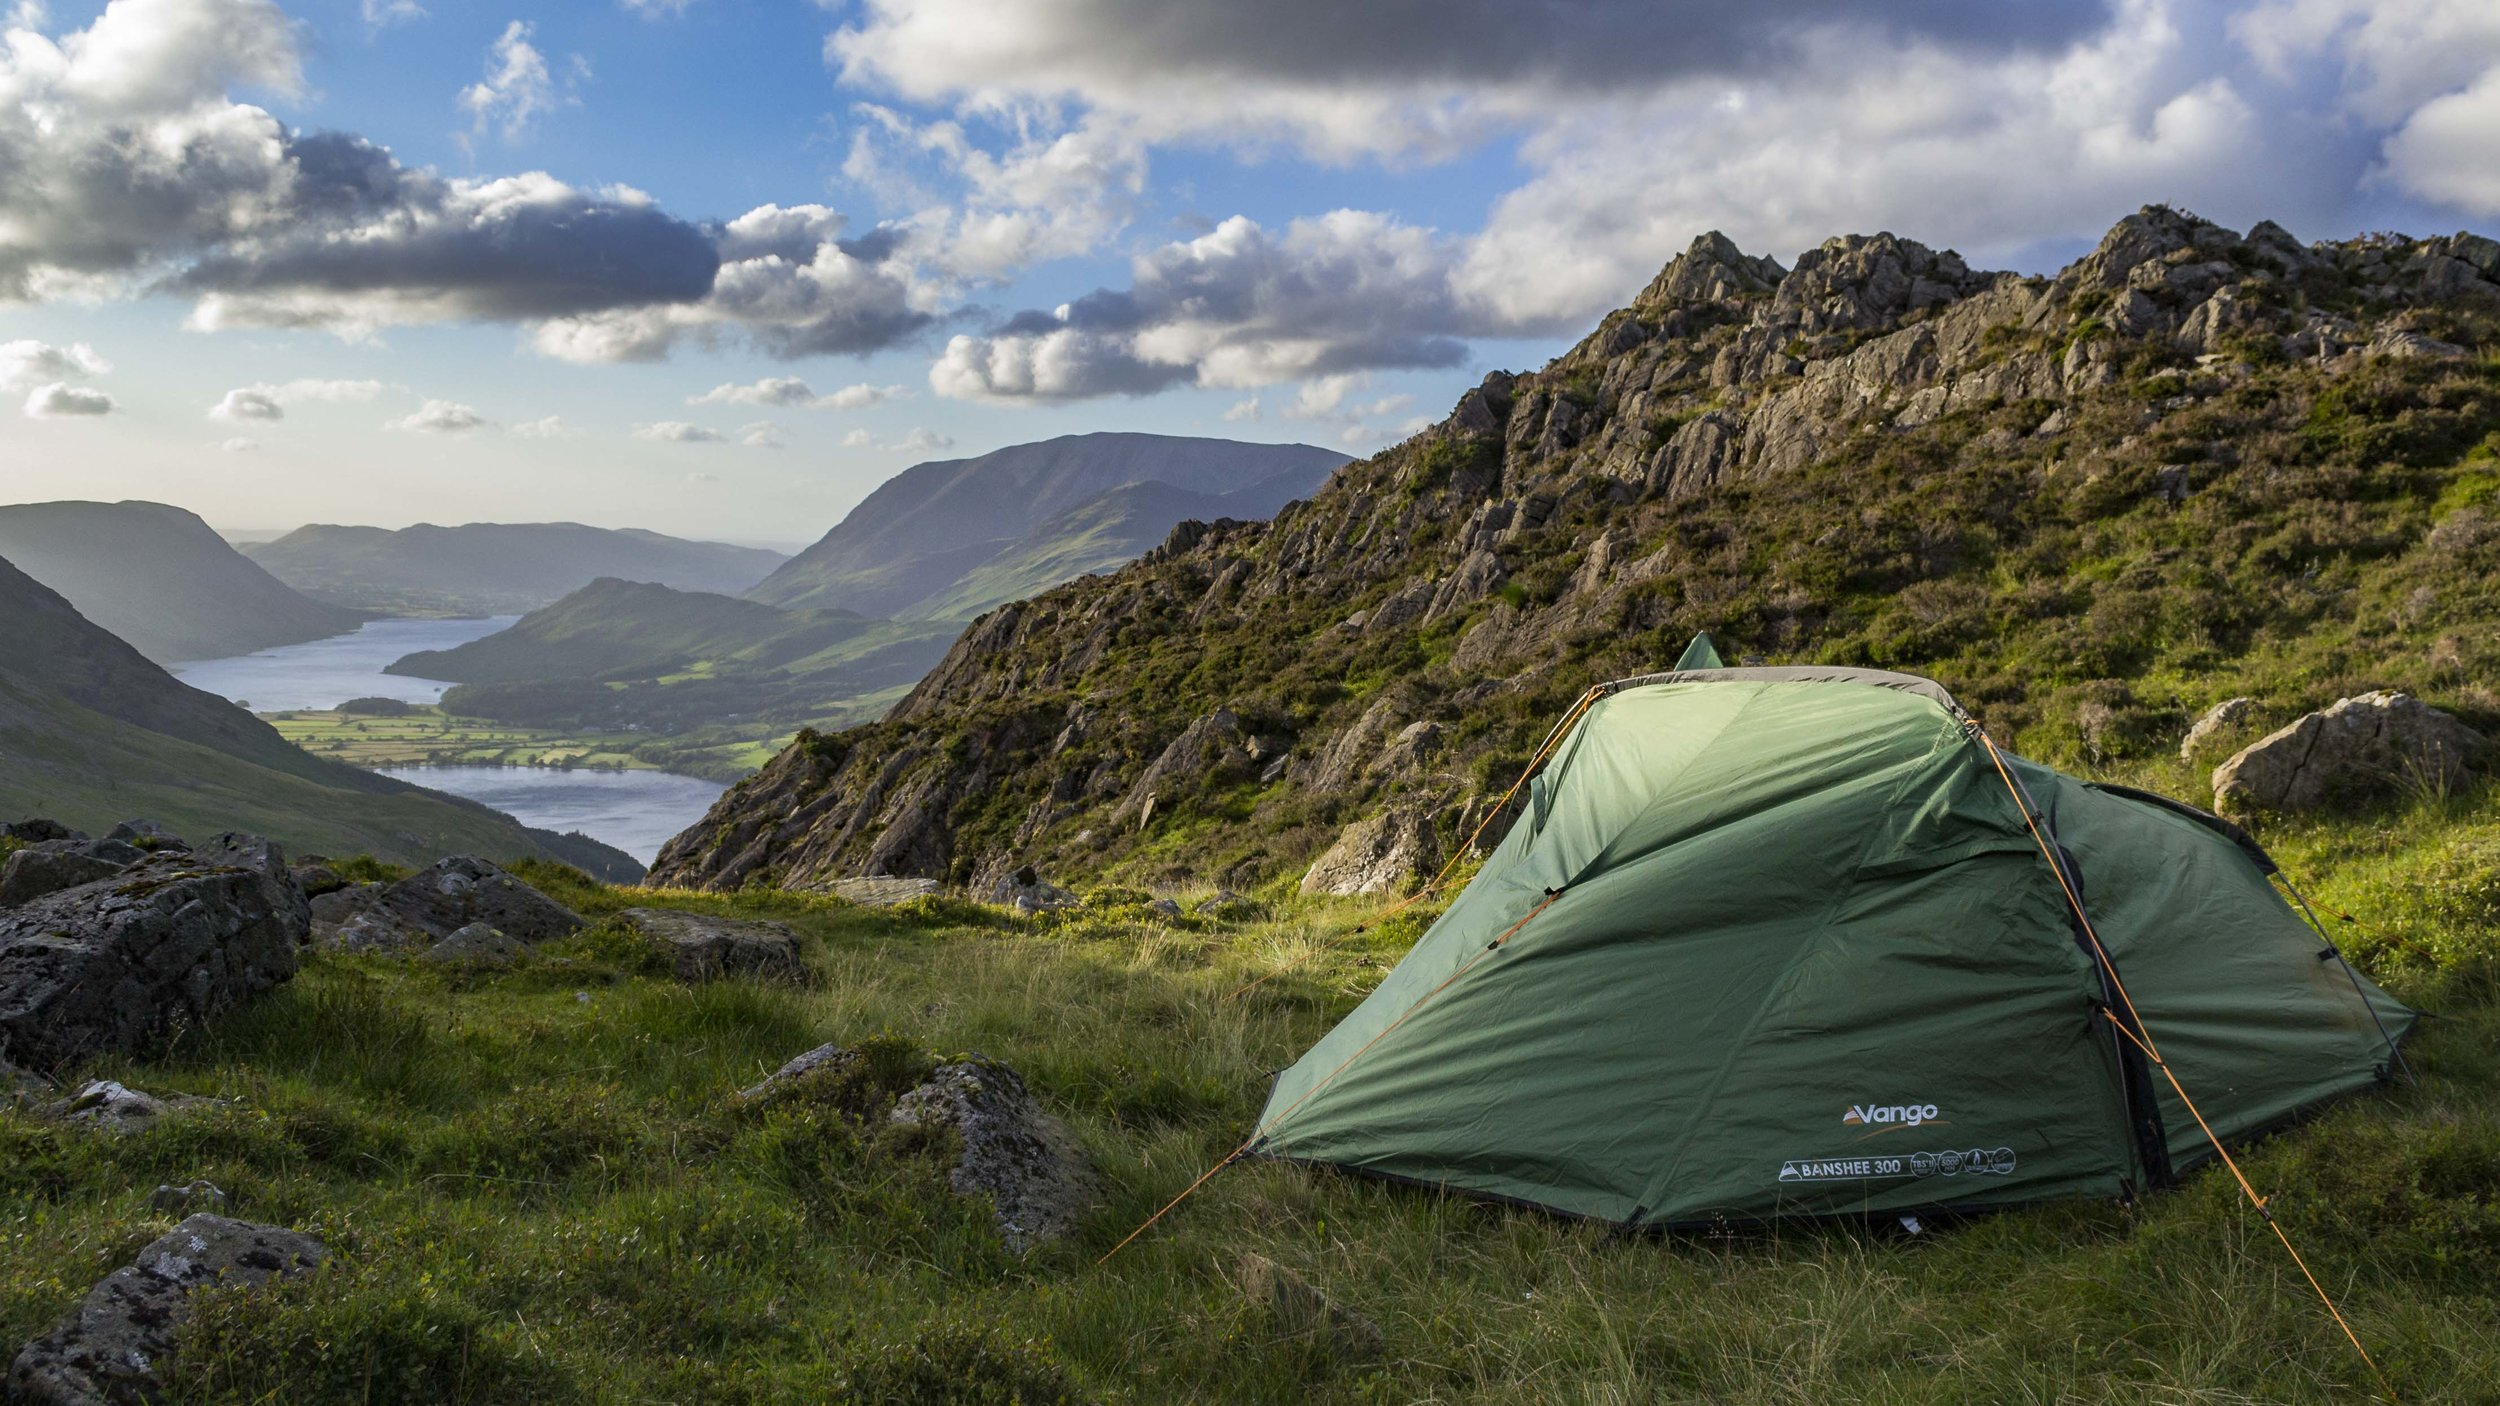 Honister and Haystacks Wild Camping Workshop - This wild camping photography tour will take us to a classic Wainwright fell, Haystacks. Packed with great photo opportunities along the way and a wild camp high up on Haystacks itself this is the perfect way to experience wild camping in a beautiful part of The Lake District and come home with some great images.Price from £56 per person